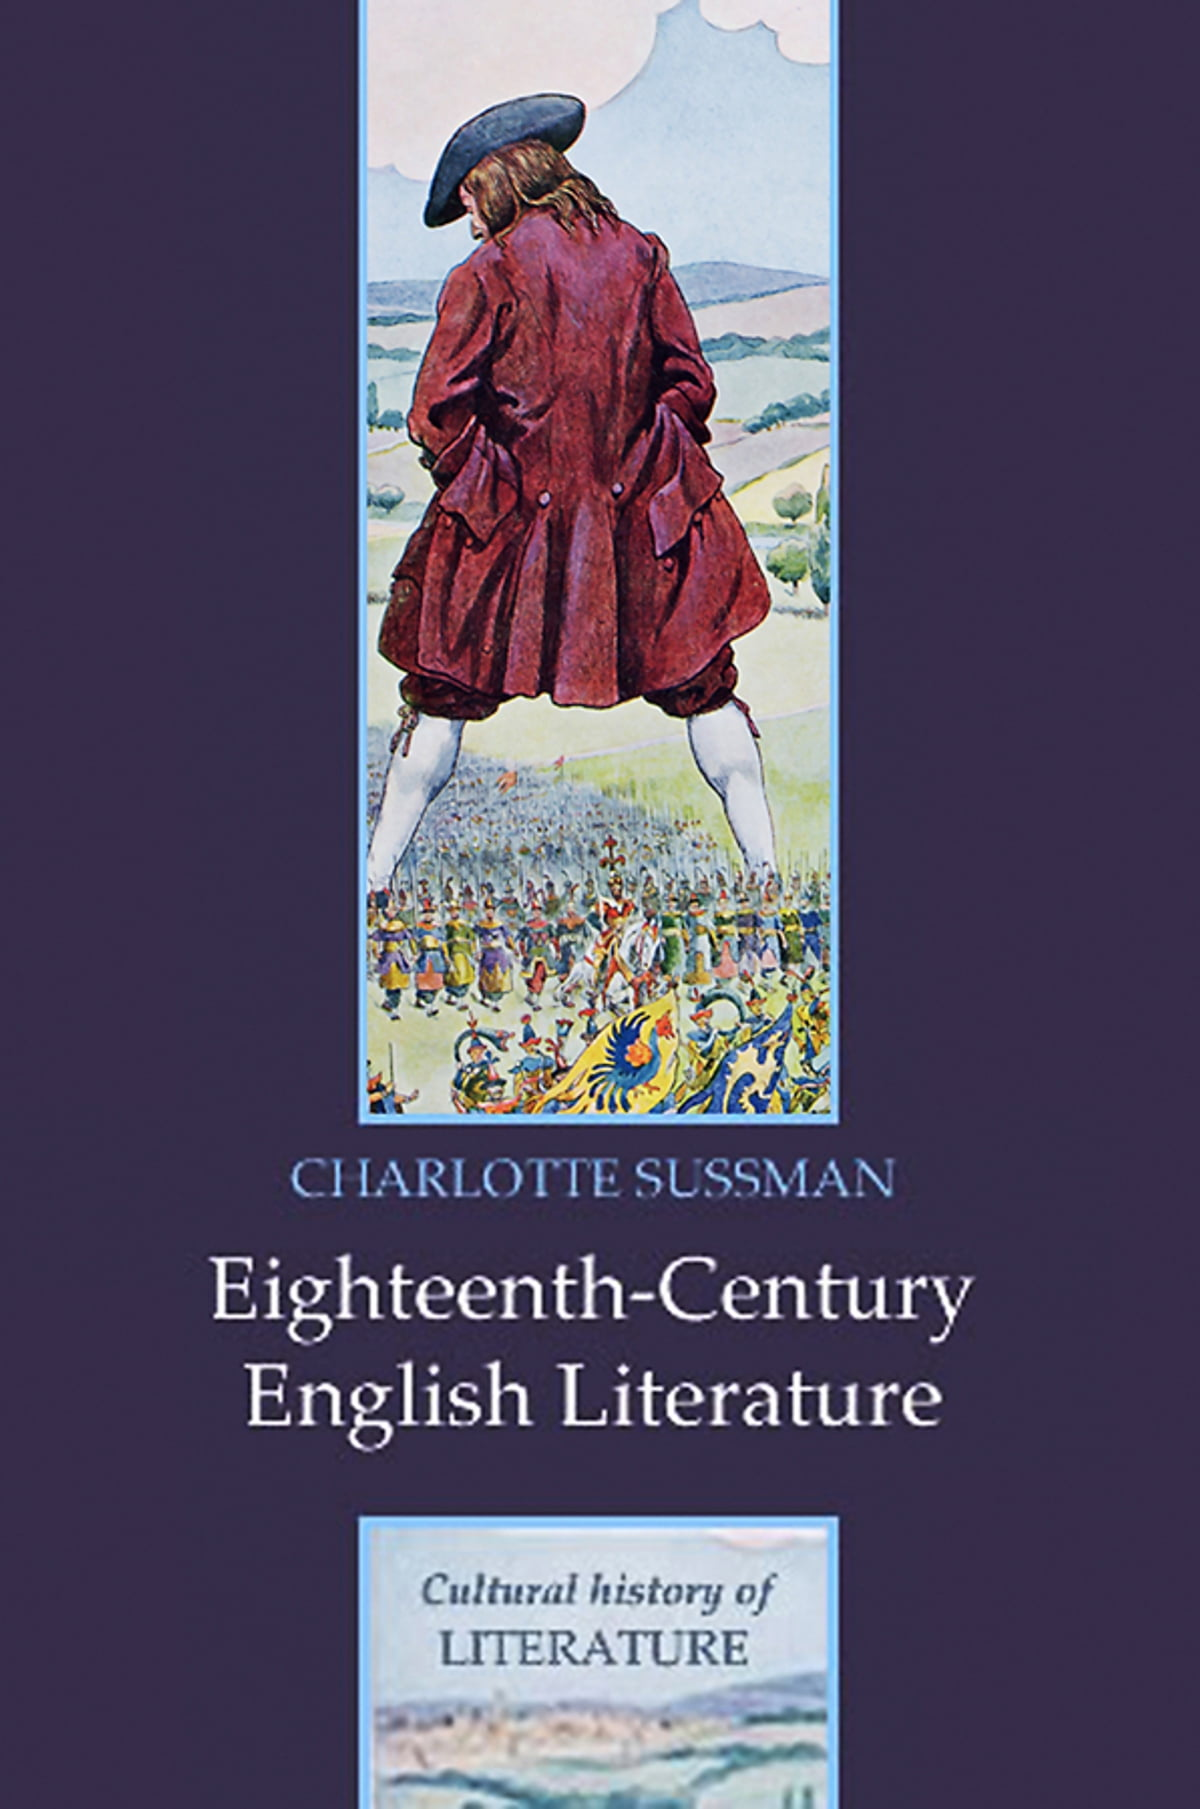 english literature 16th century Renaissance influence on 16th century english literature the english language had almost no prestige abroad at the beginning of the sixteenth century  one of the earliest sixteenth- century works of english literature , thomas more's utopia, was written in latin for an international intellectual community.